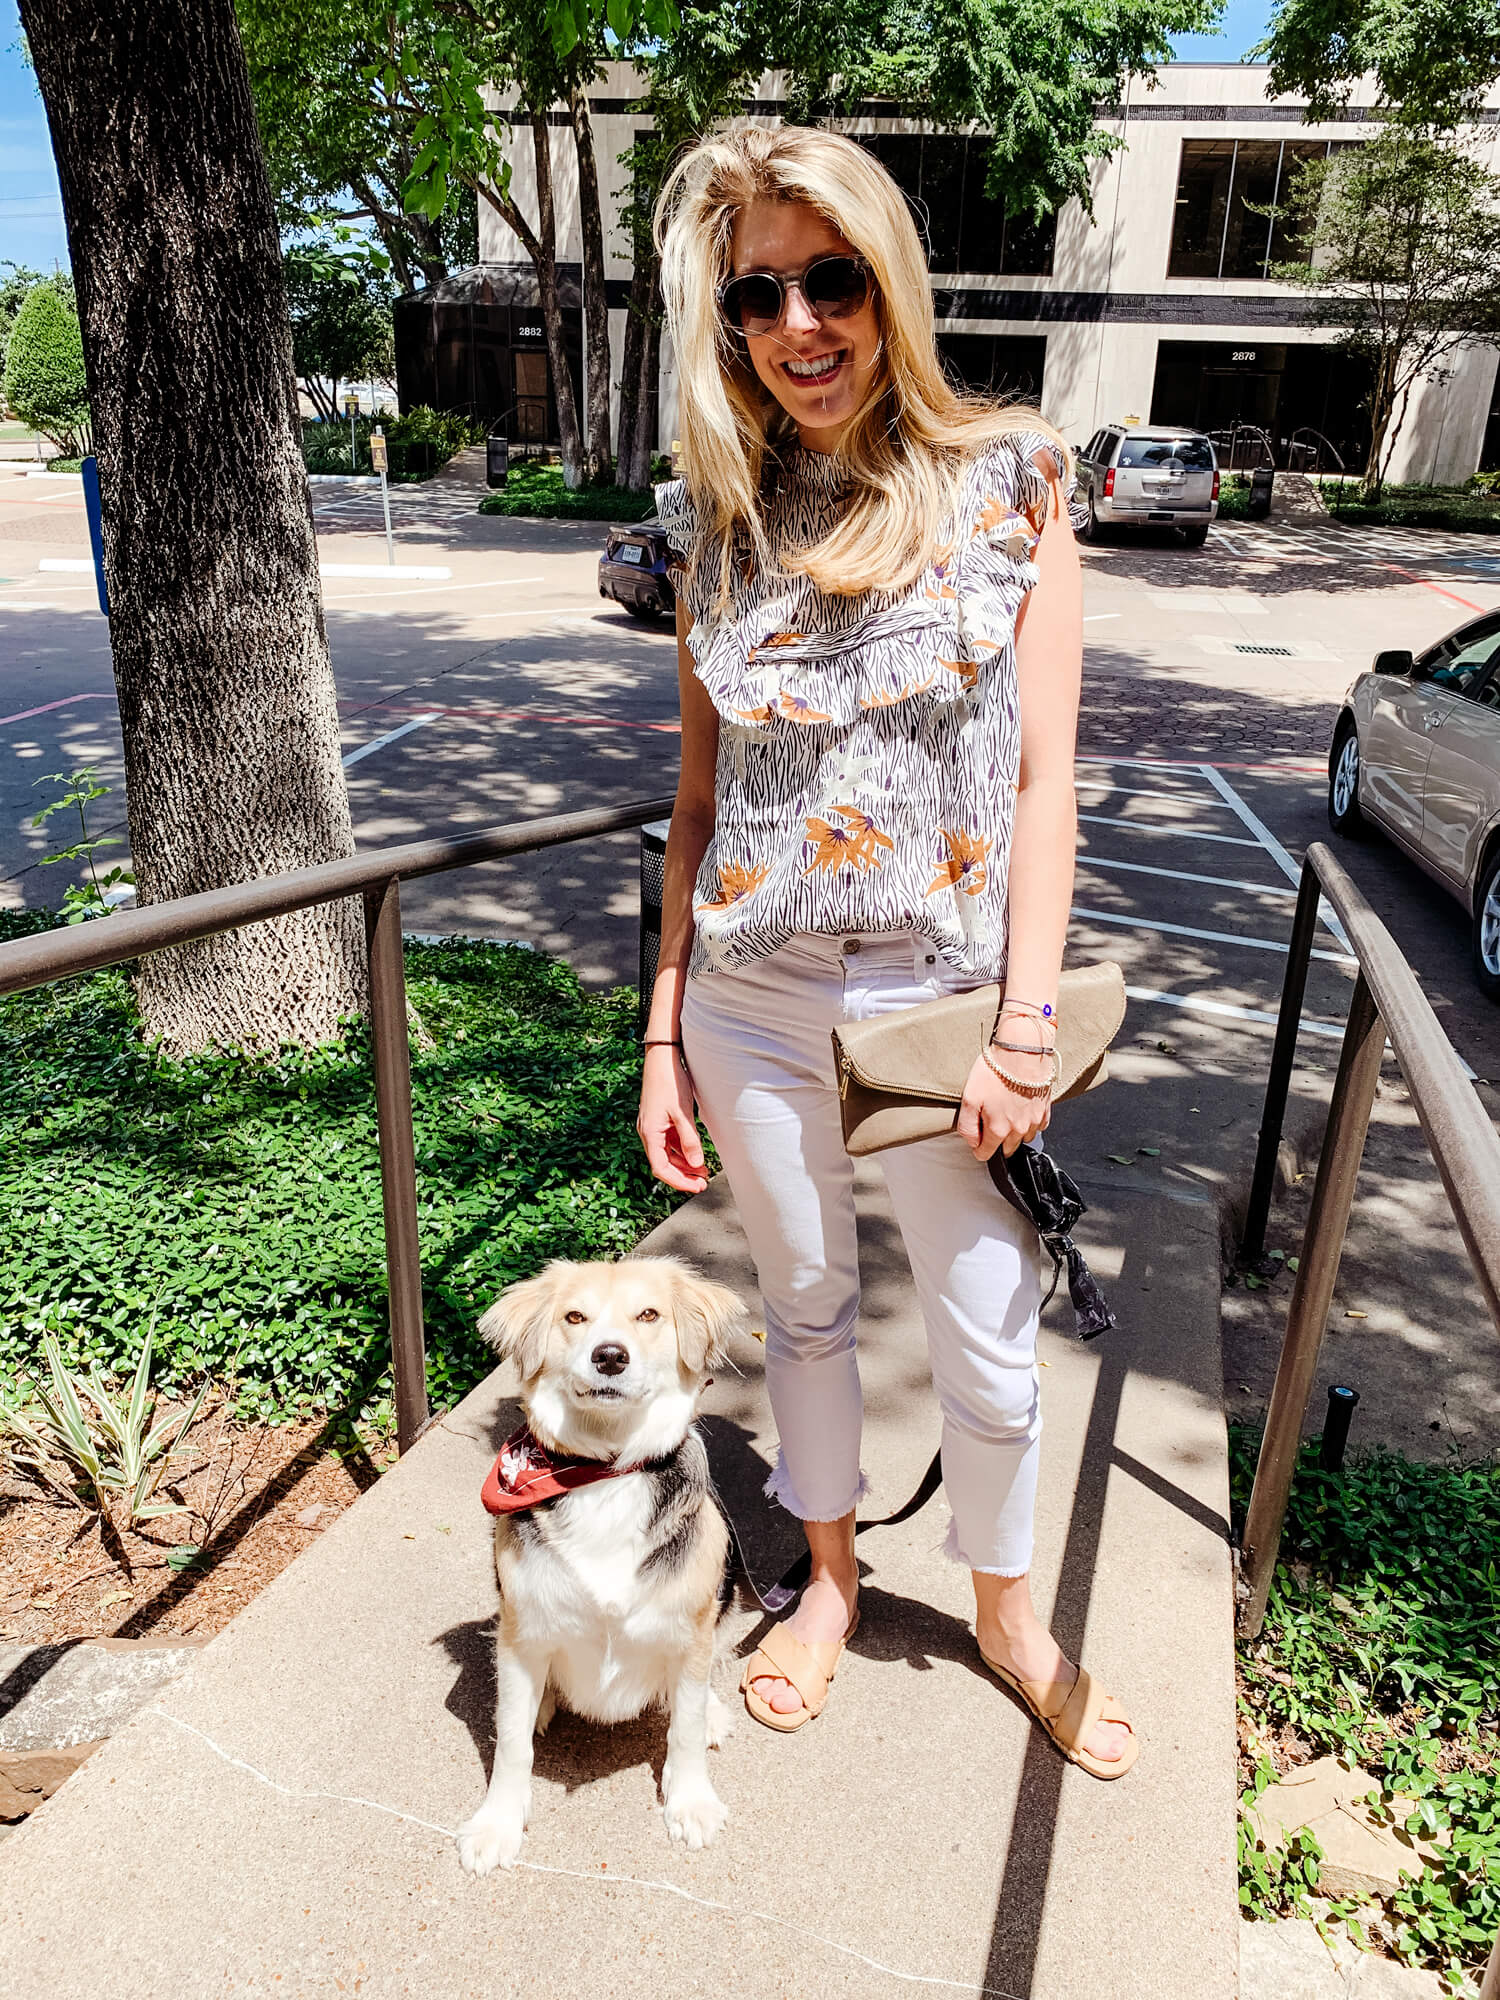 White Jeans Outfit Ideas - 5 Ways to Wear White Jeans | Printed Top White Jeans Outfit | Floral Top White Jeans Outfit | Cute White Jeans Outfits Summer | Stevie May | Dl1961 White Jeans | Florence Ankle Mid Rise Skinny Jean | Monc Sunglasses | Sole Society Tazmmi Clutch